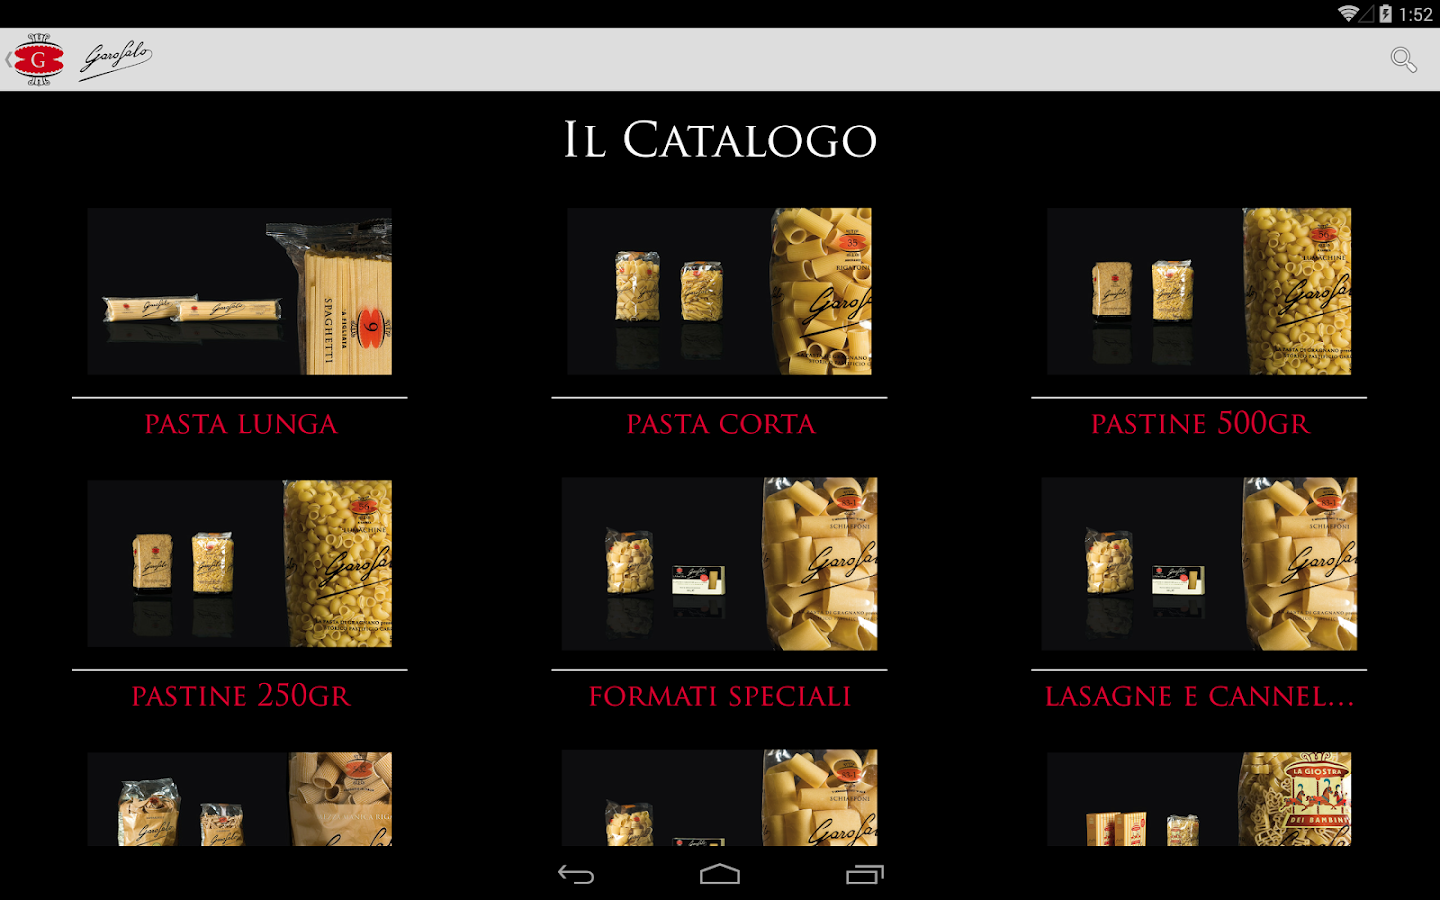 Garofalo Catalogo Prodotti- screenshot